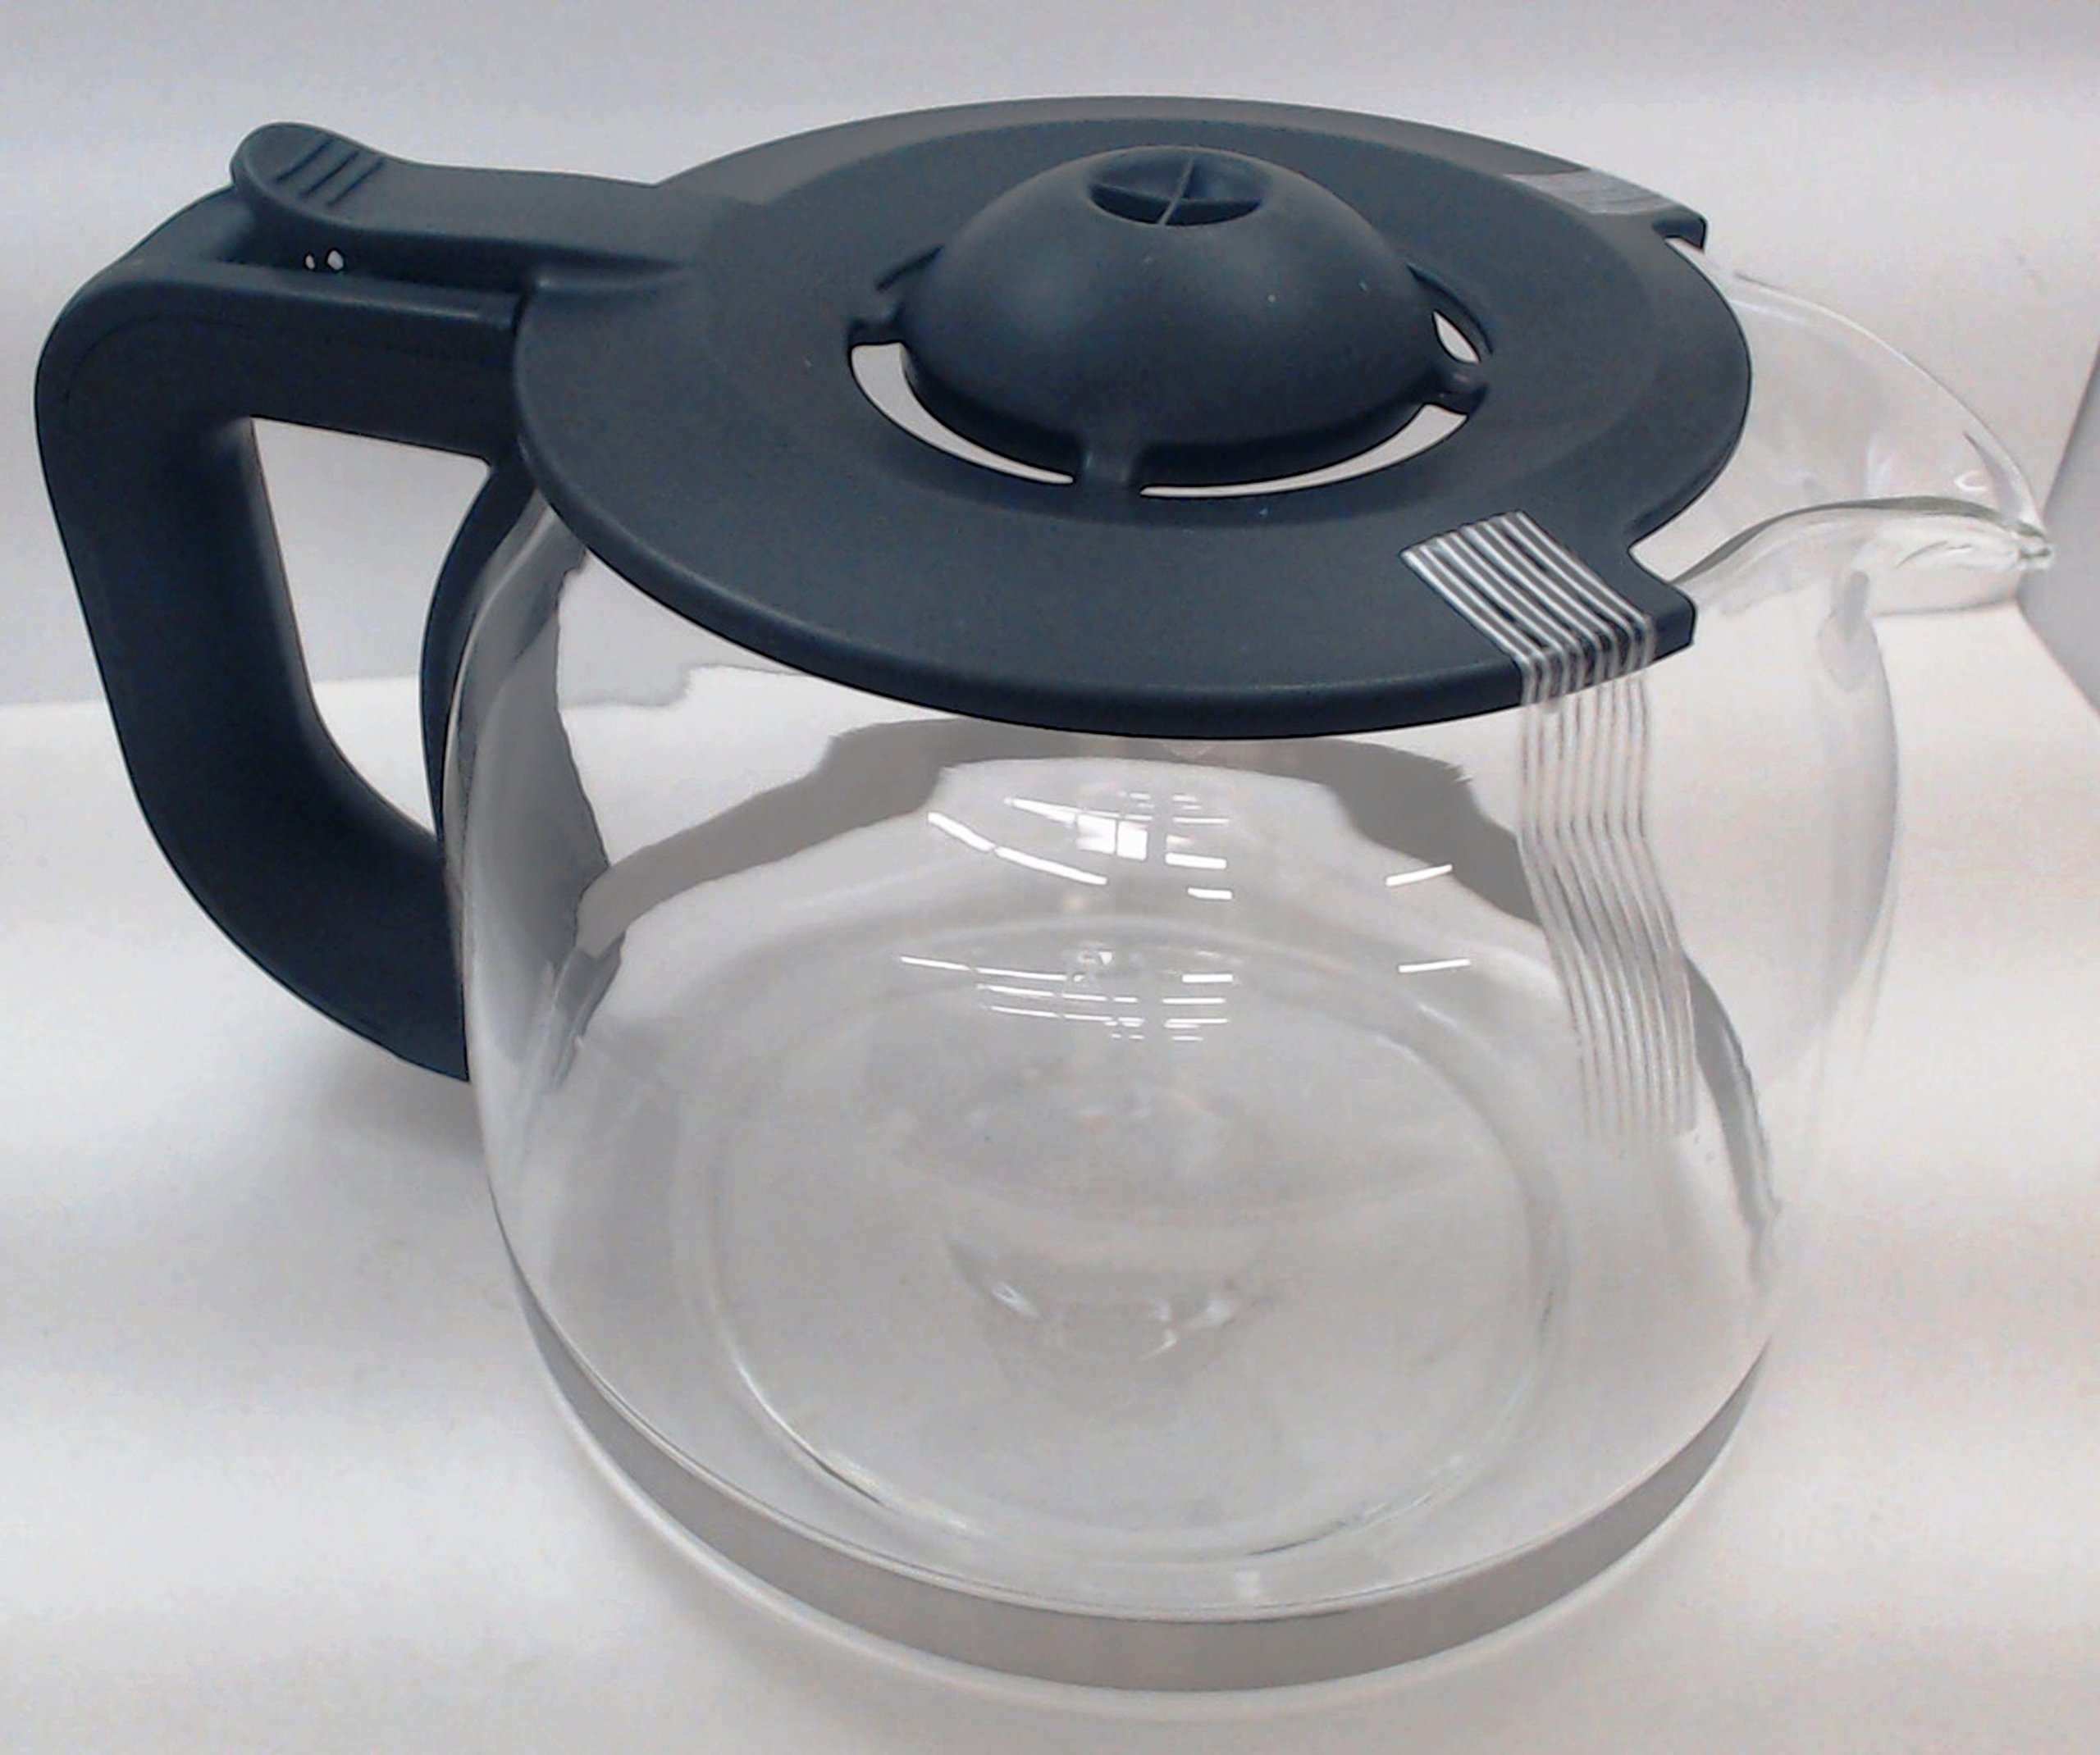 Coffee Maker Glass Carafe for KitchenAid, AP6038012, KCM1204, W10908114 by Seneca River Trading